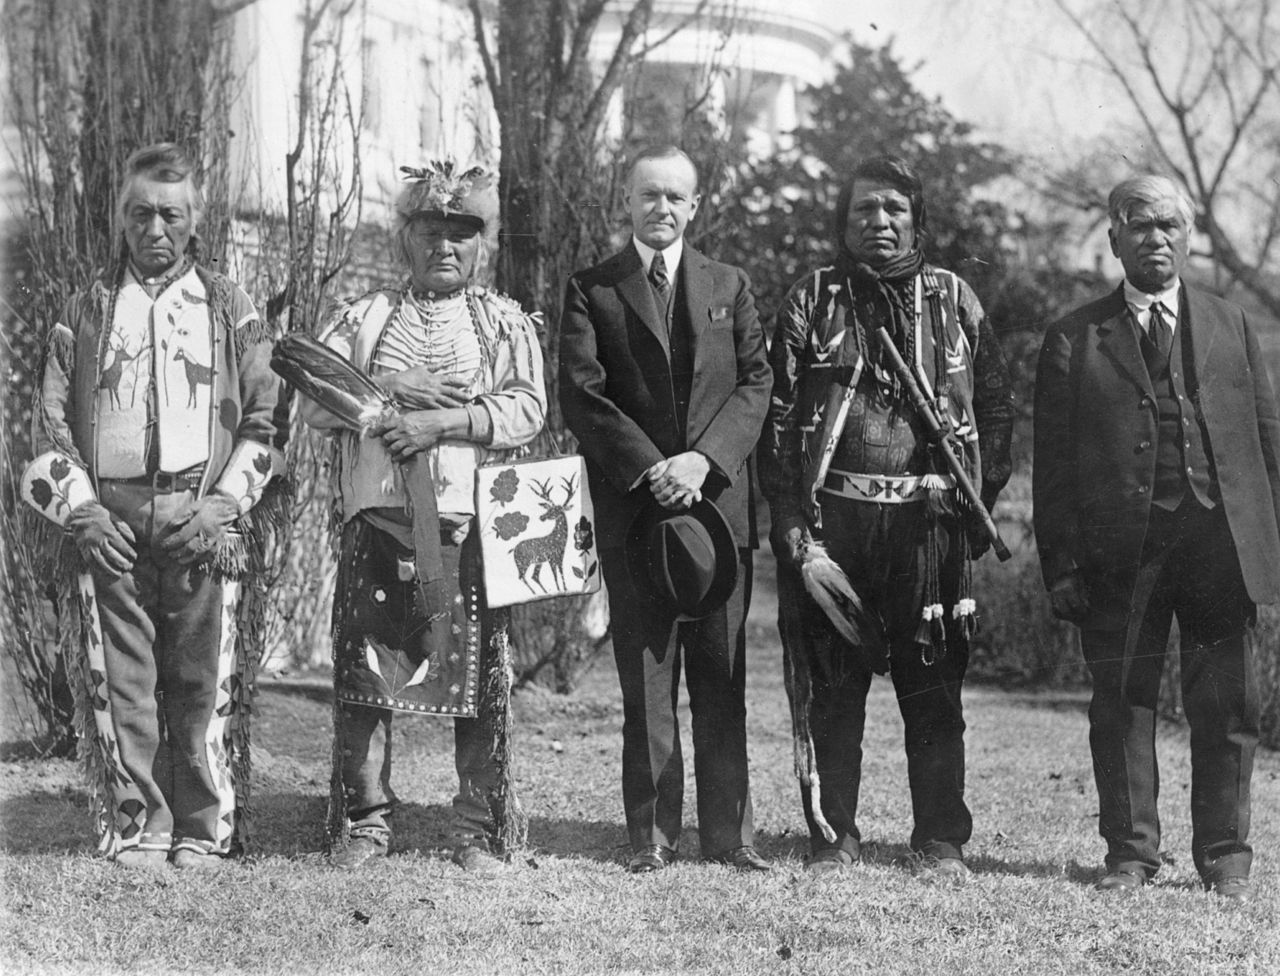 Calvin Coolidge, 30e président des Etats-Unis (2 août 1923 – 4 mars 1929) avec des membres de la tribu des Osages lors de la signature de l'Indian Citizenship Act, National Photo Company, Library of Congress, 1924.